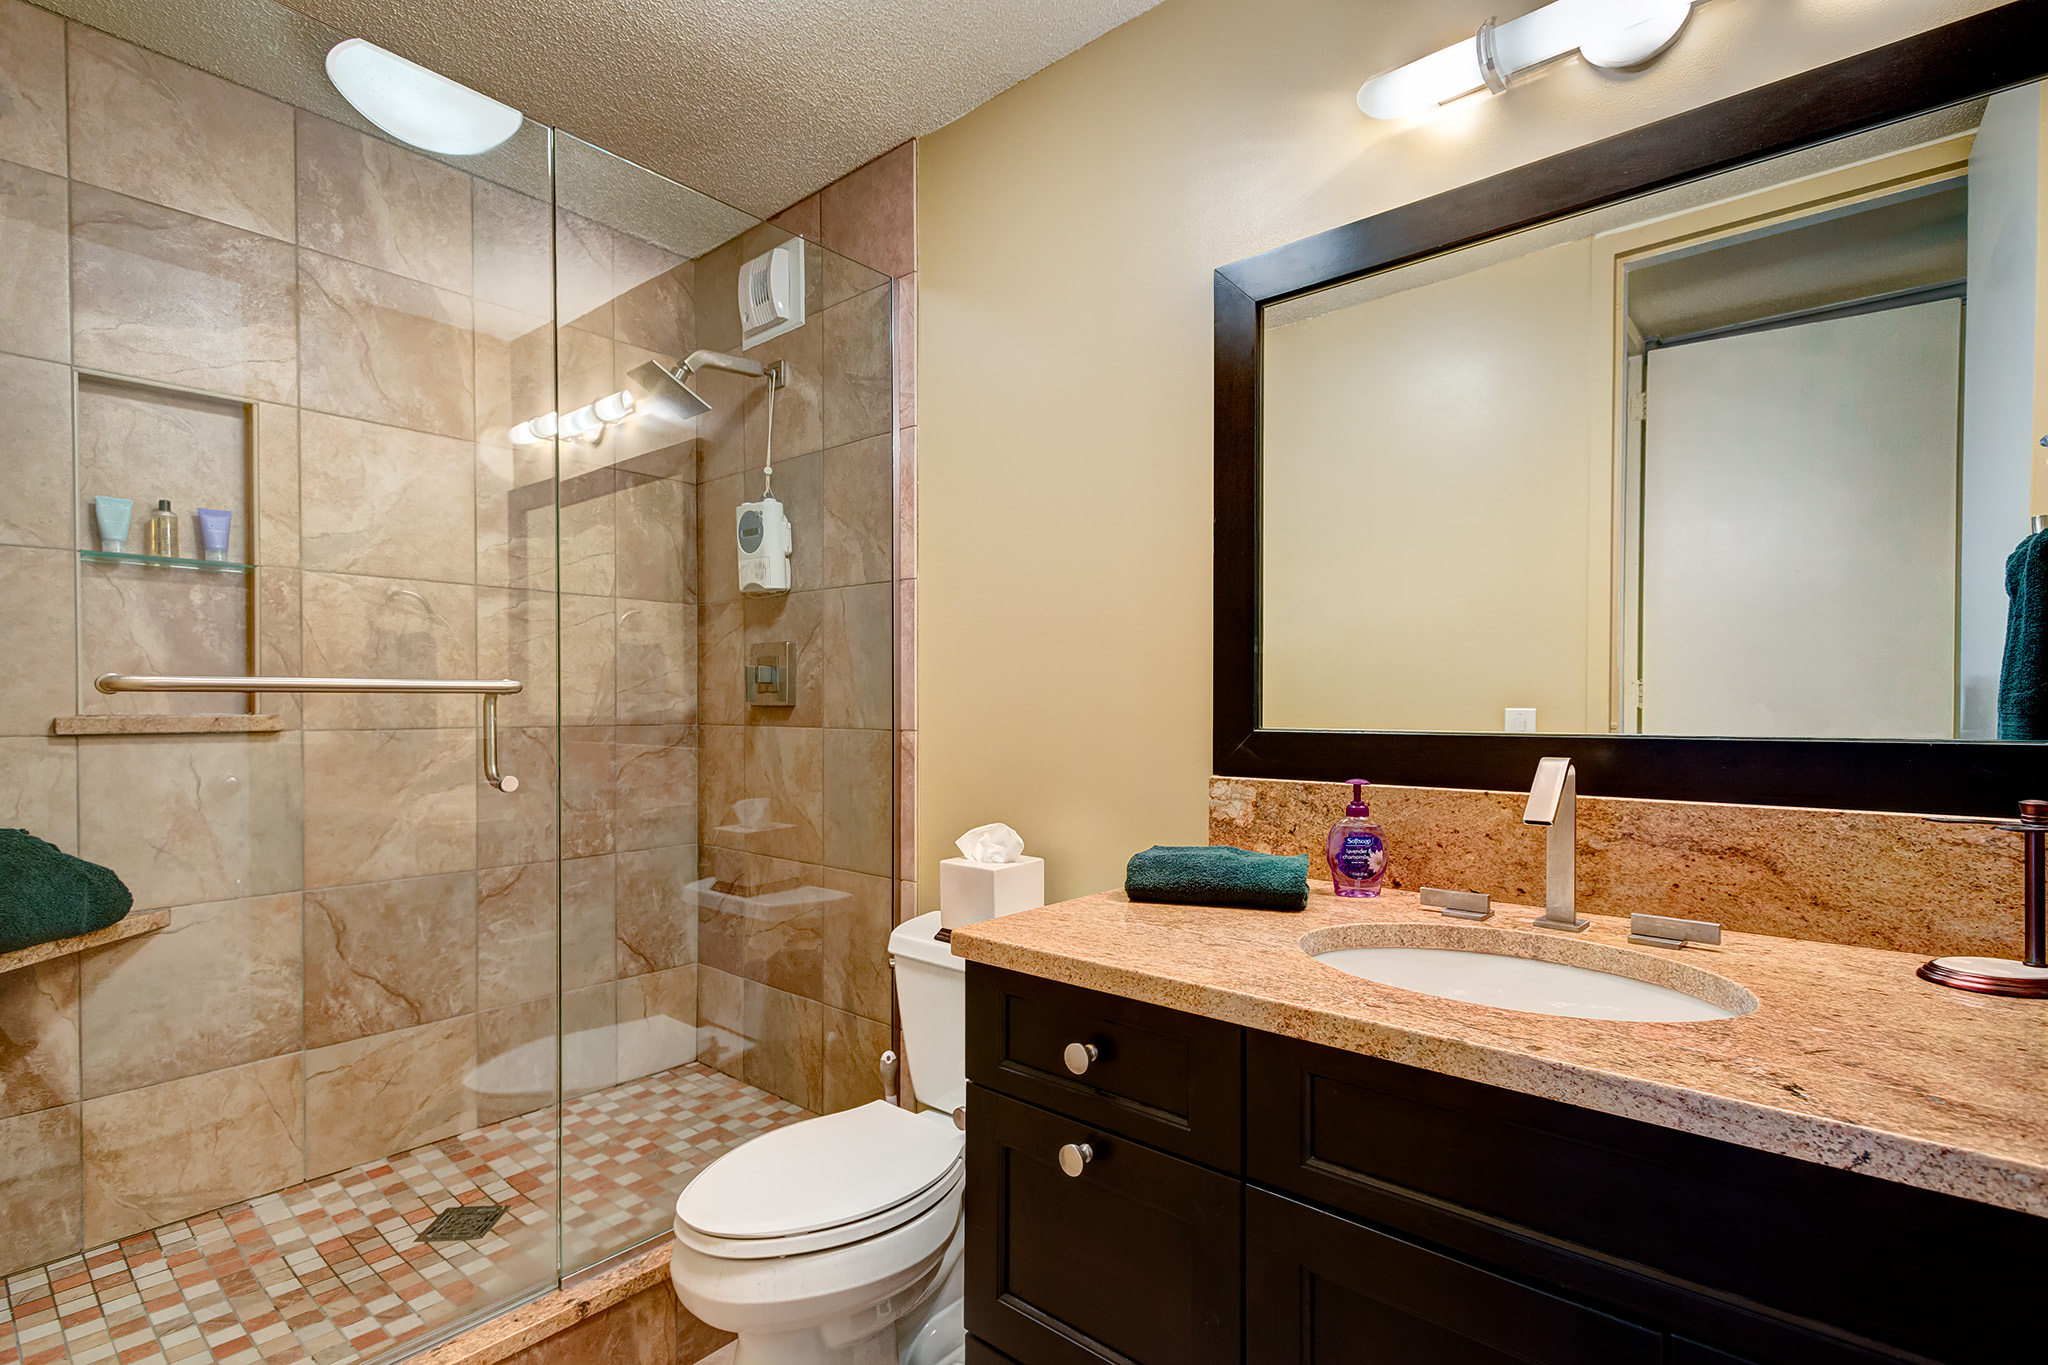 Bathroom Remodeling Michael Menn Ltd 8477706303Michael Menn